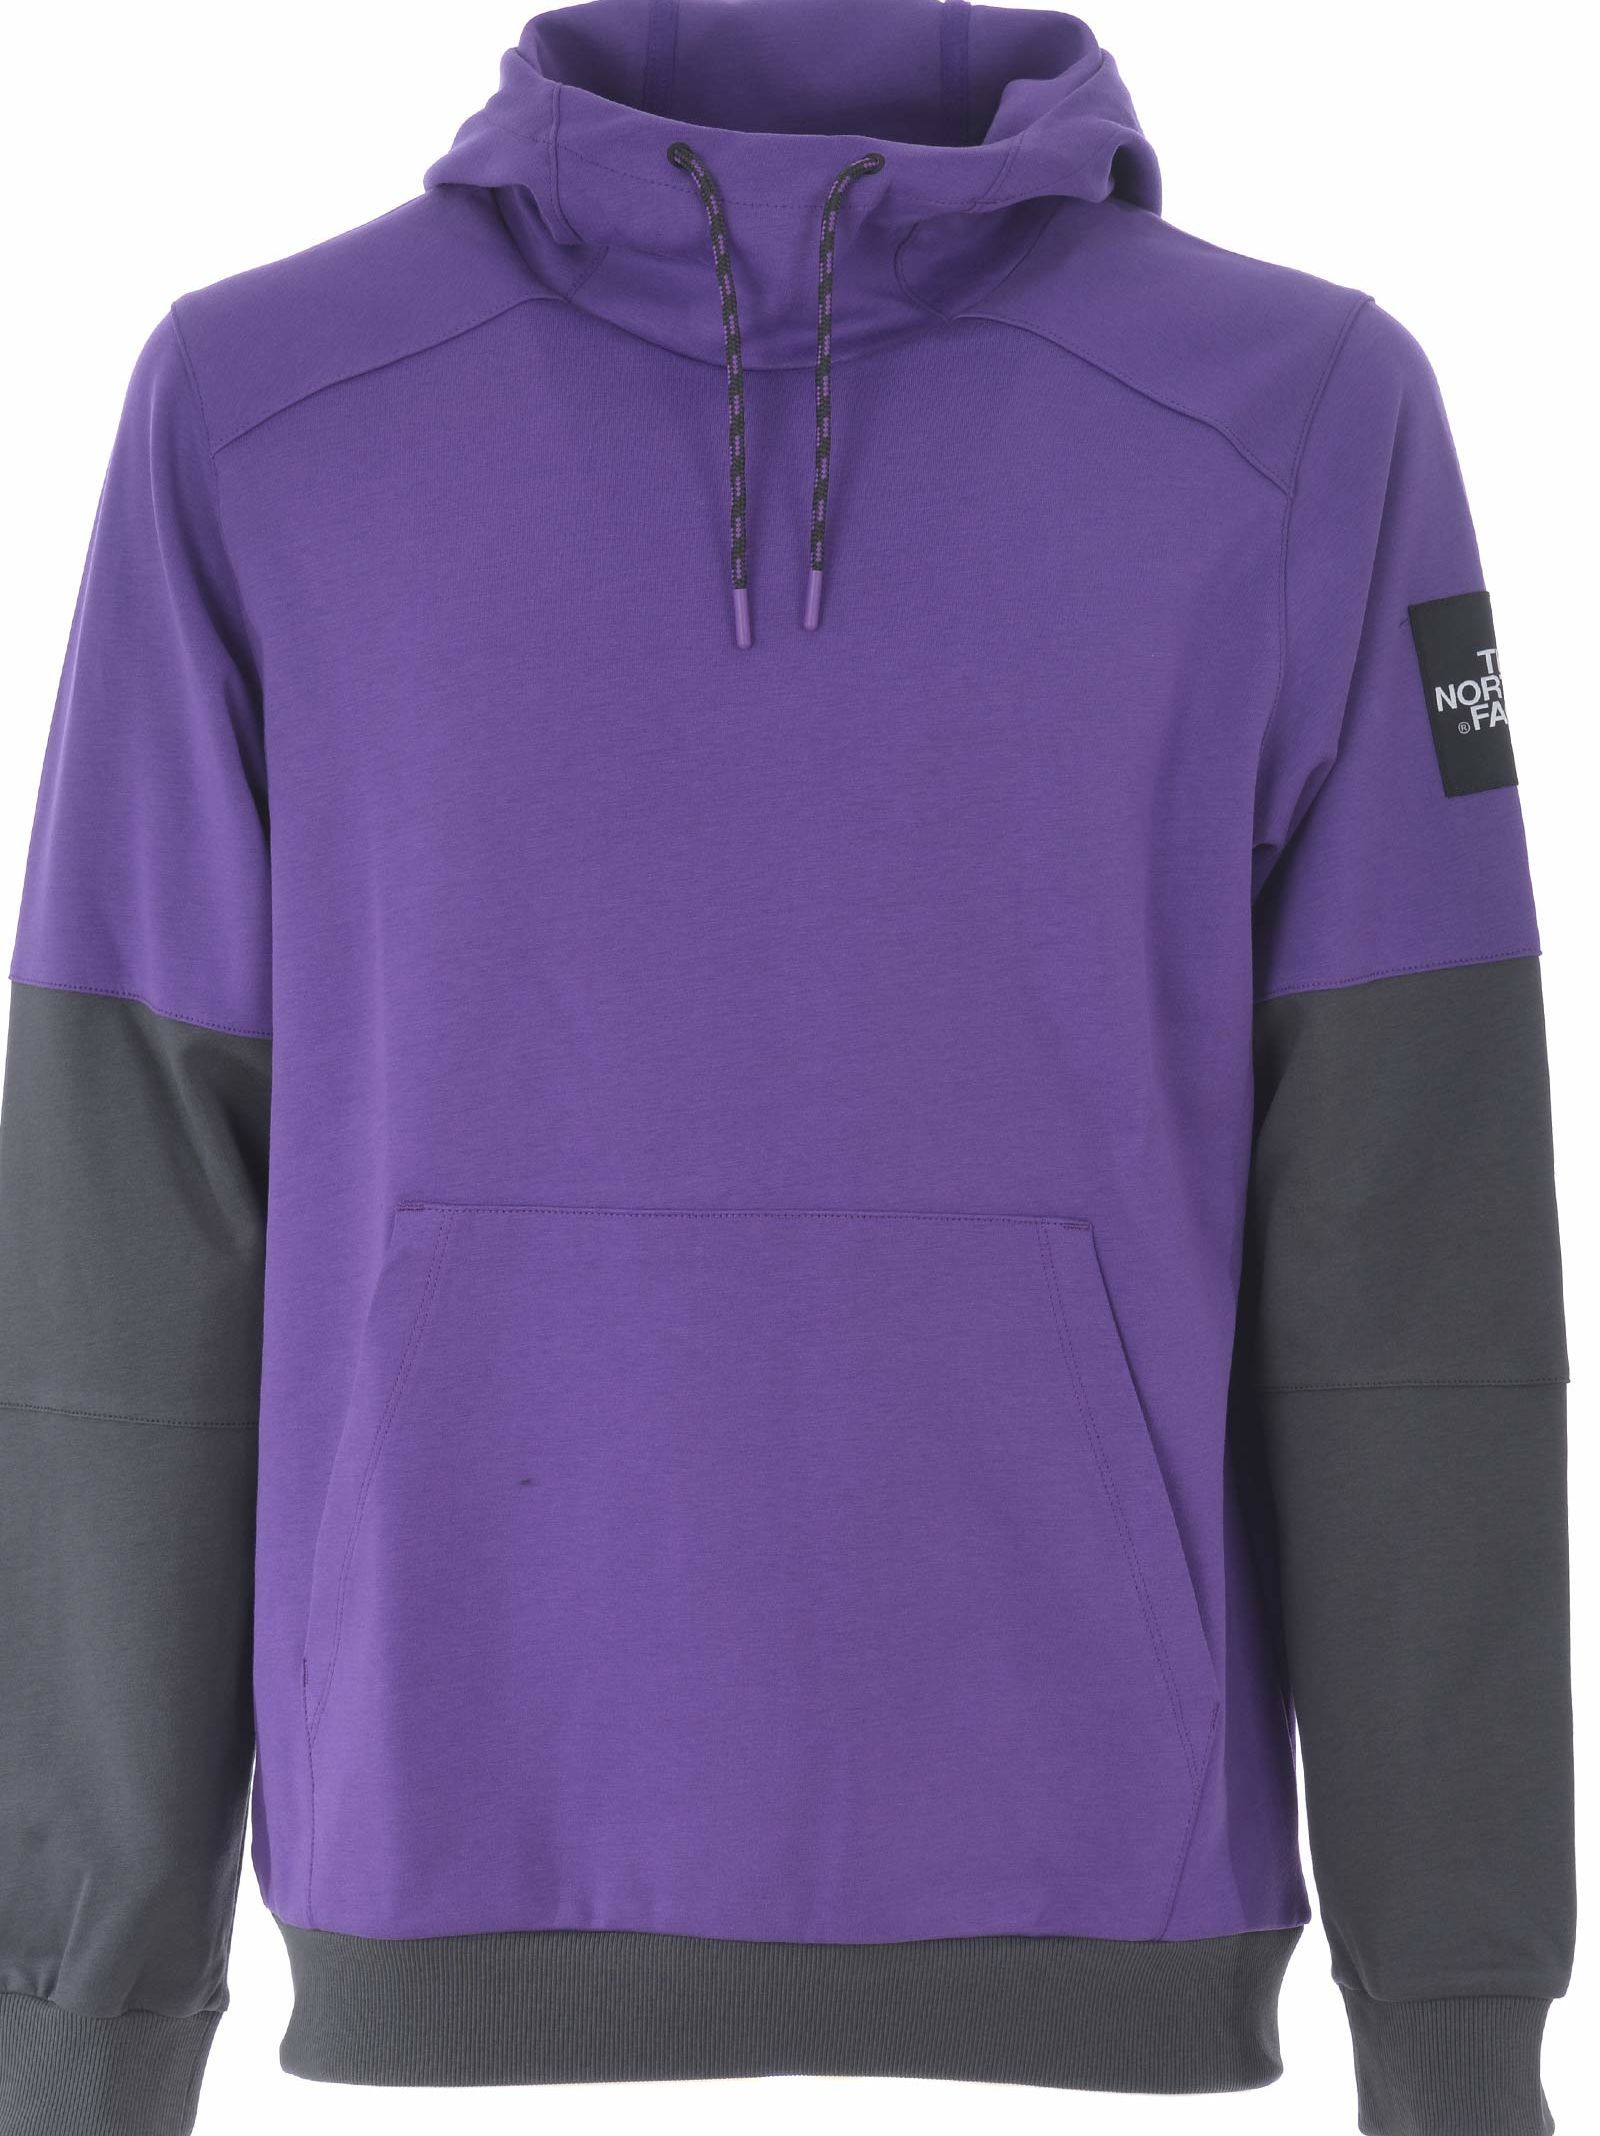 295852f88 THE NORTH FACE LOGO PATCH HOODIE. #thenorthface #cloth   The North ...